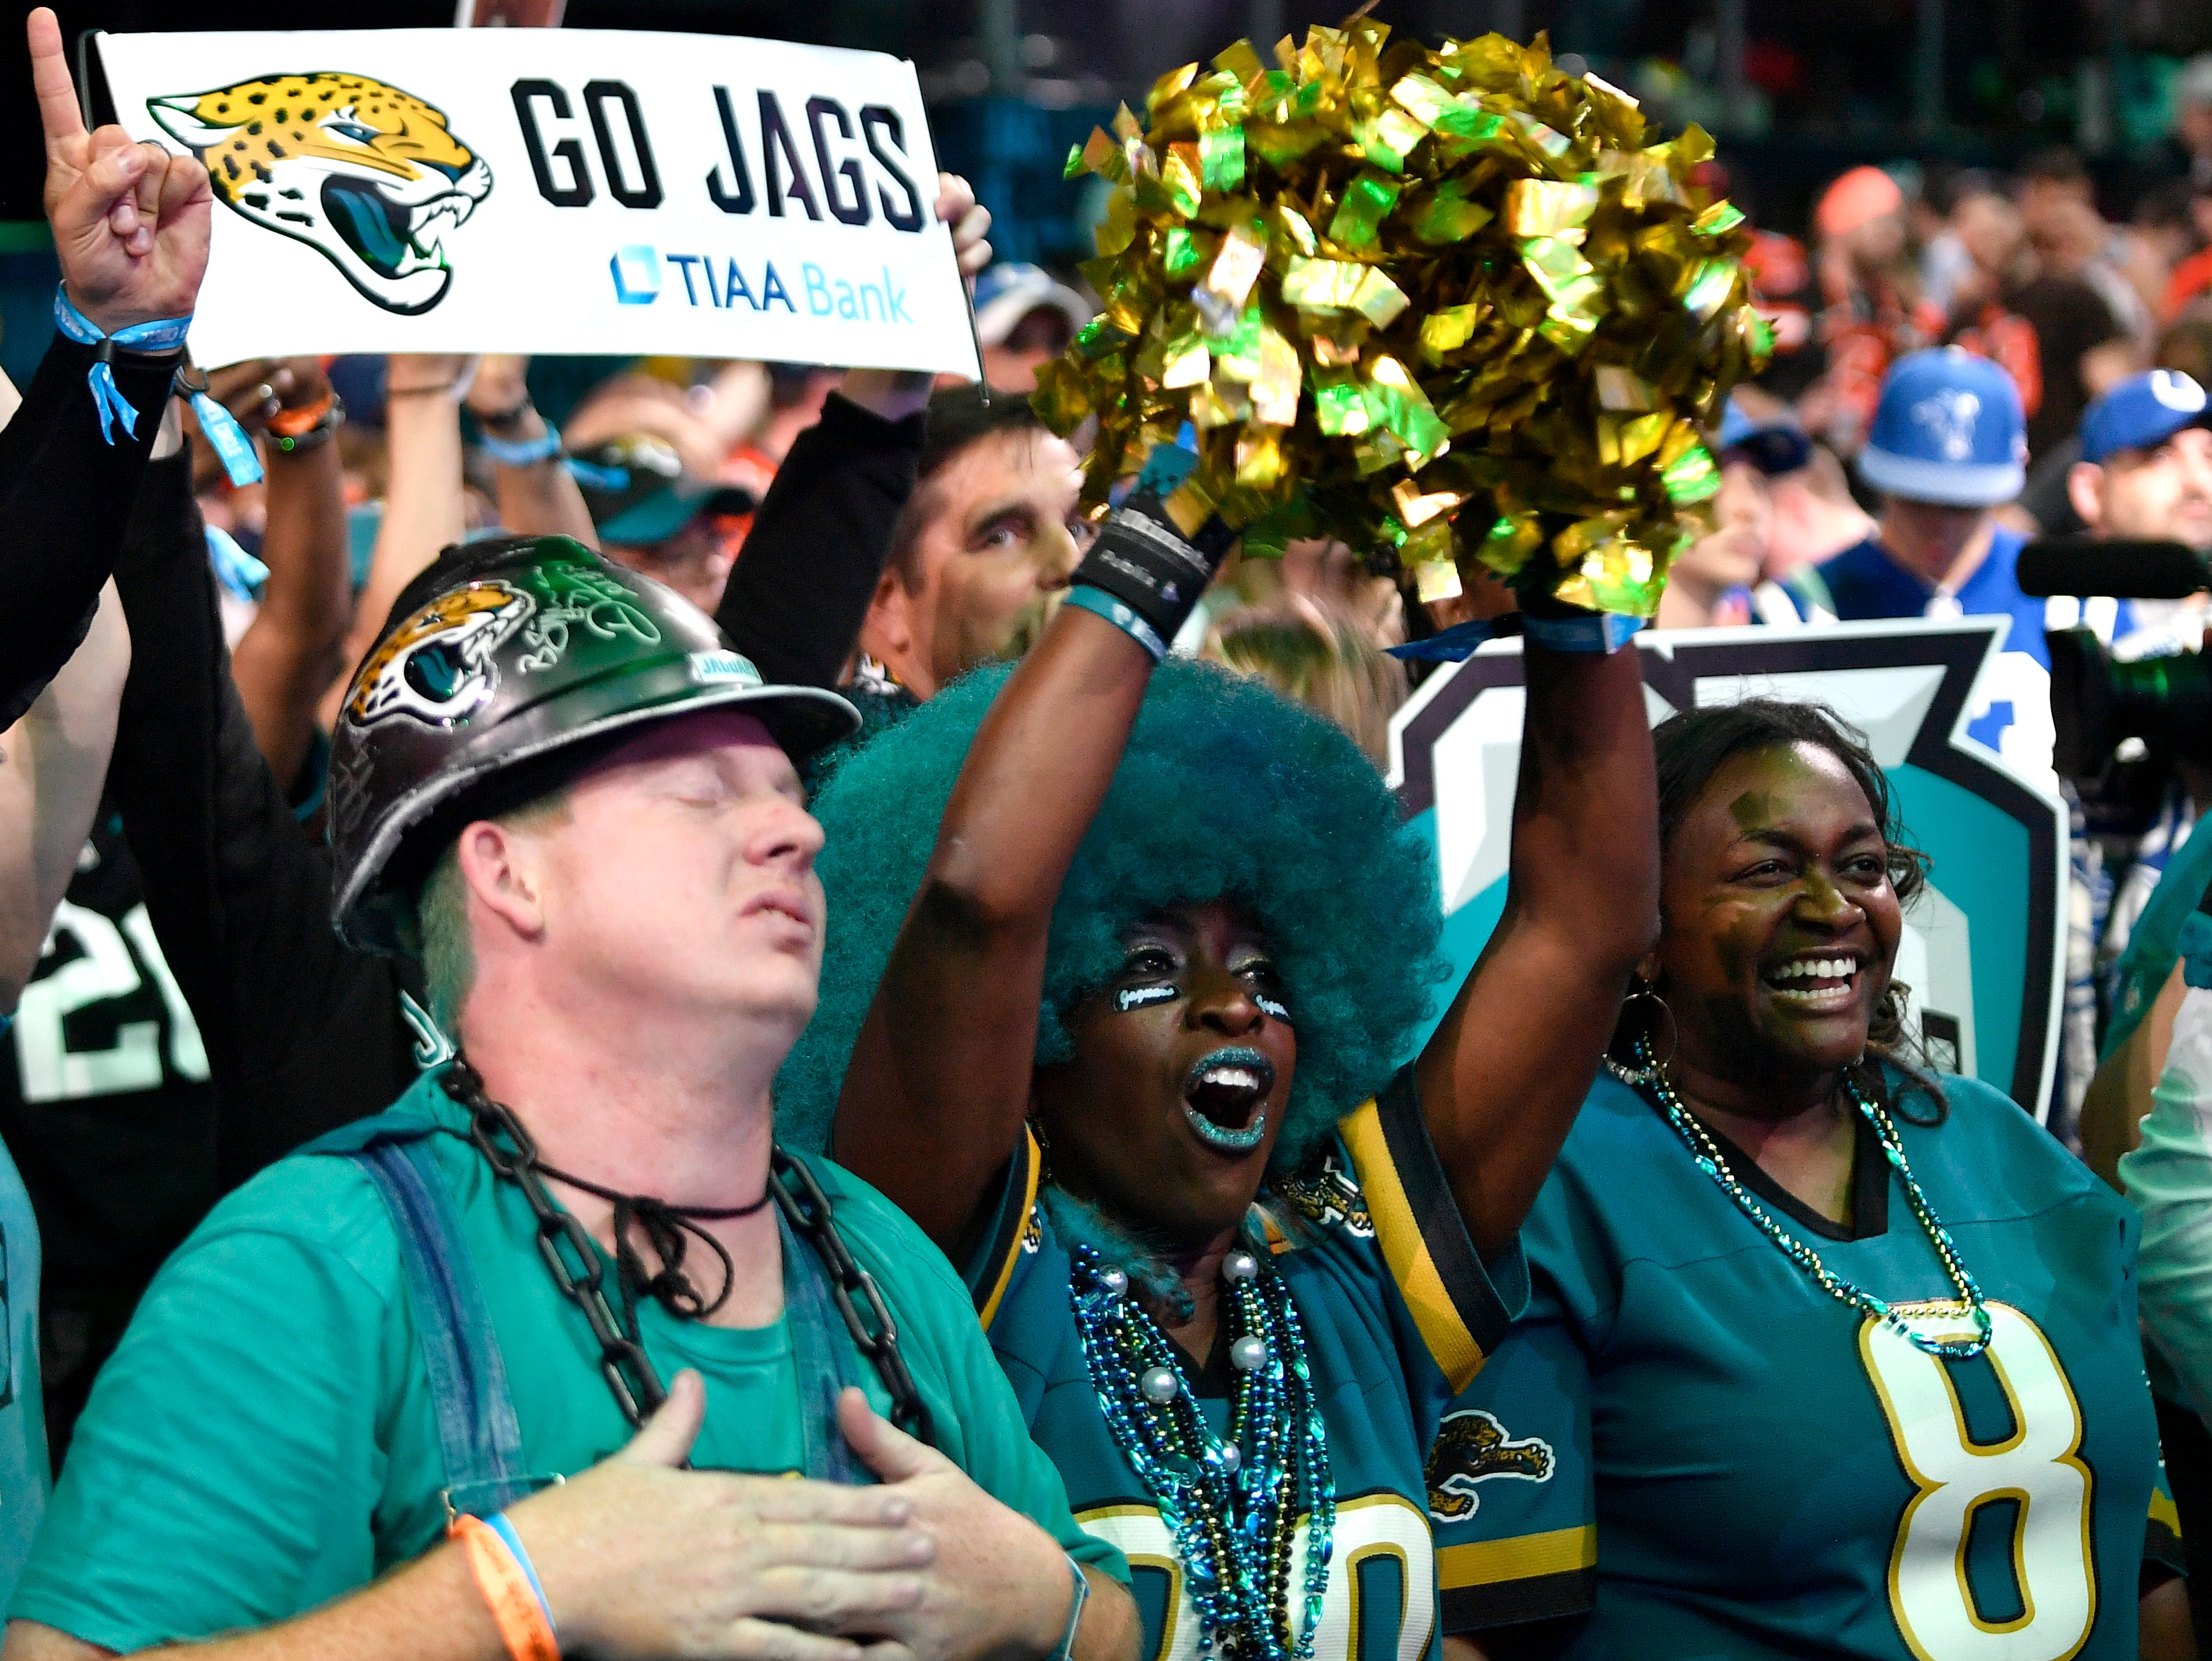 Jacksonville Jaguars fans react to the pick during the first round of the NFL Draft Thursday, April 25, 2019, in Nashville, Tenn.